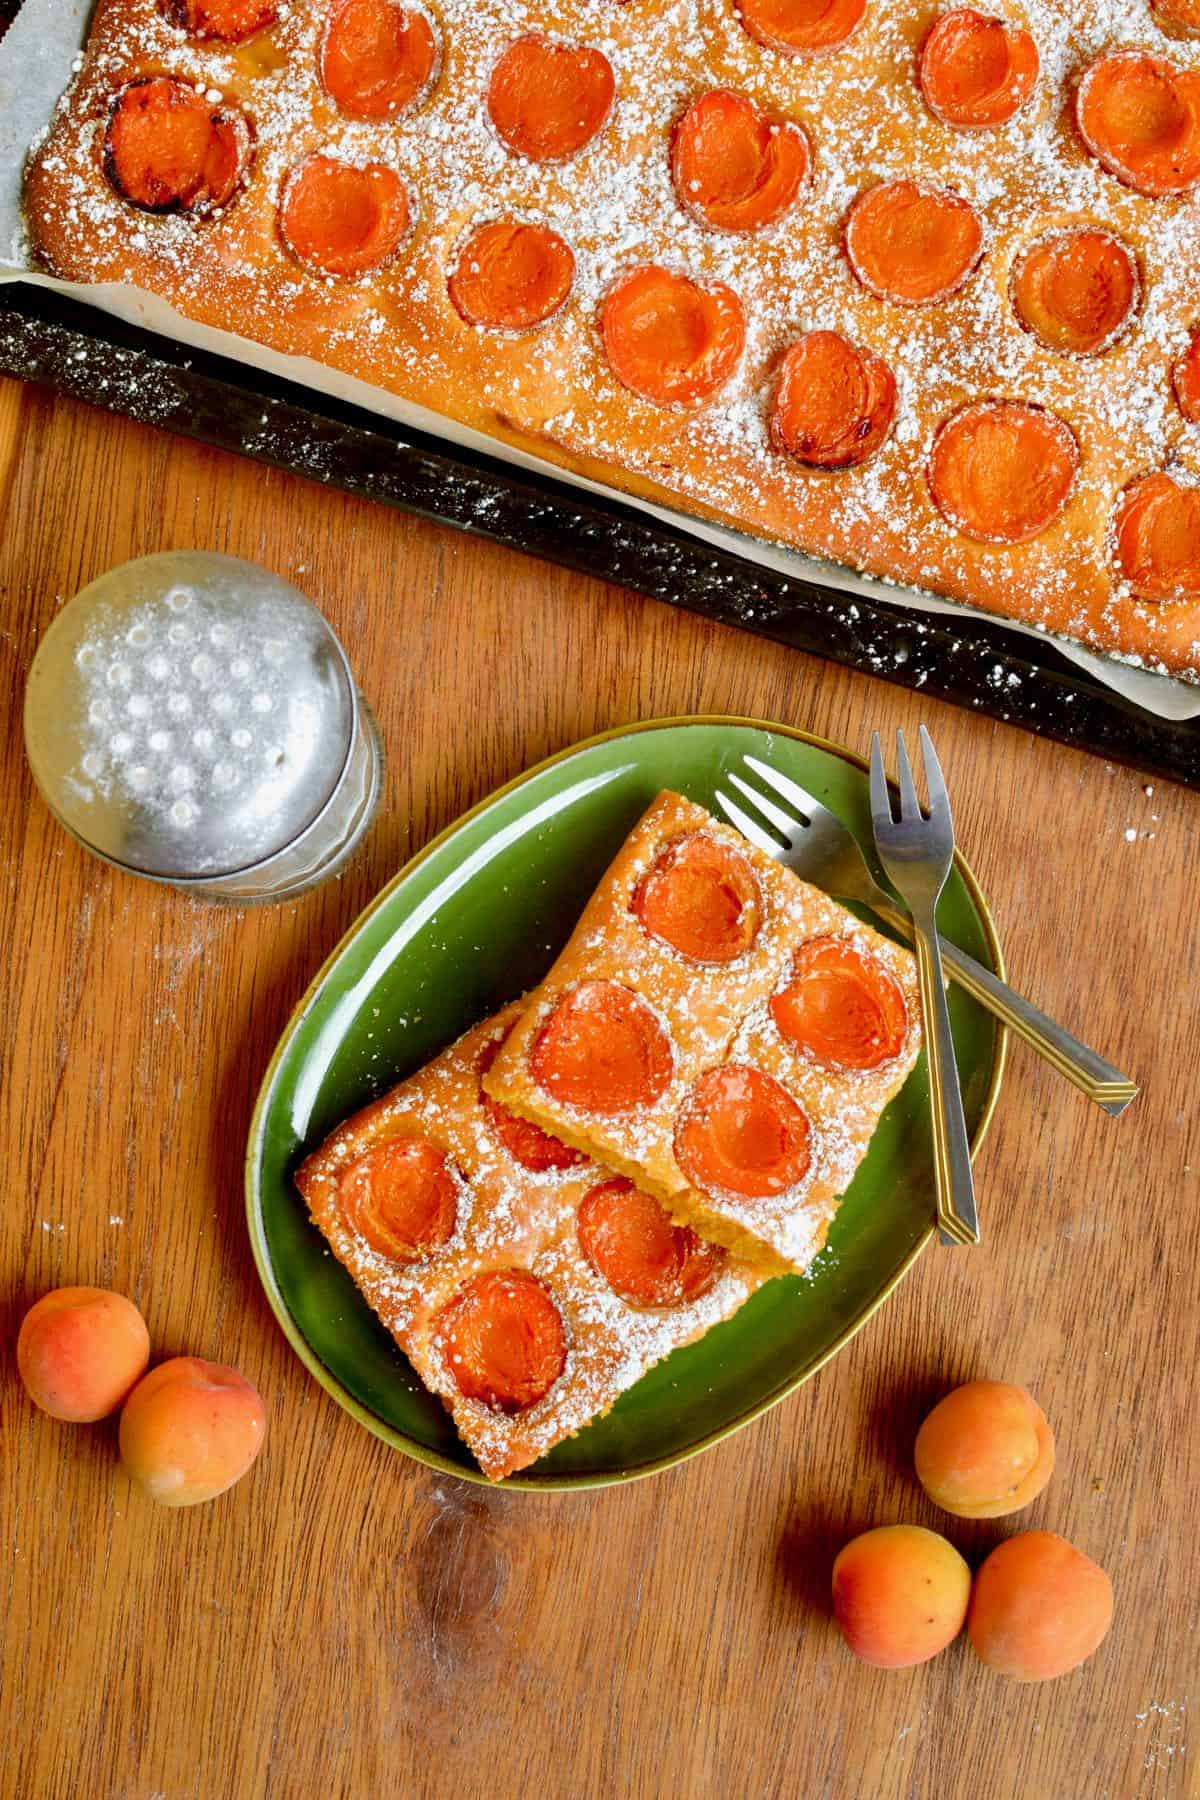 A tray of fresh golden brown cake. The cake is the size and shape of a large baking sheet and rather flat, topped with apricot halves and dusted with icing sugar. Next to it some of the cake served on a green plate and an icing sugar dispenser.